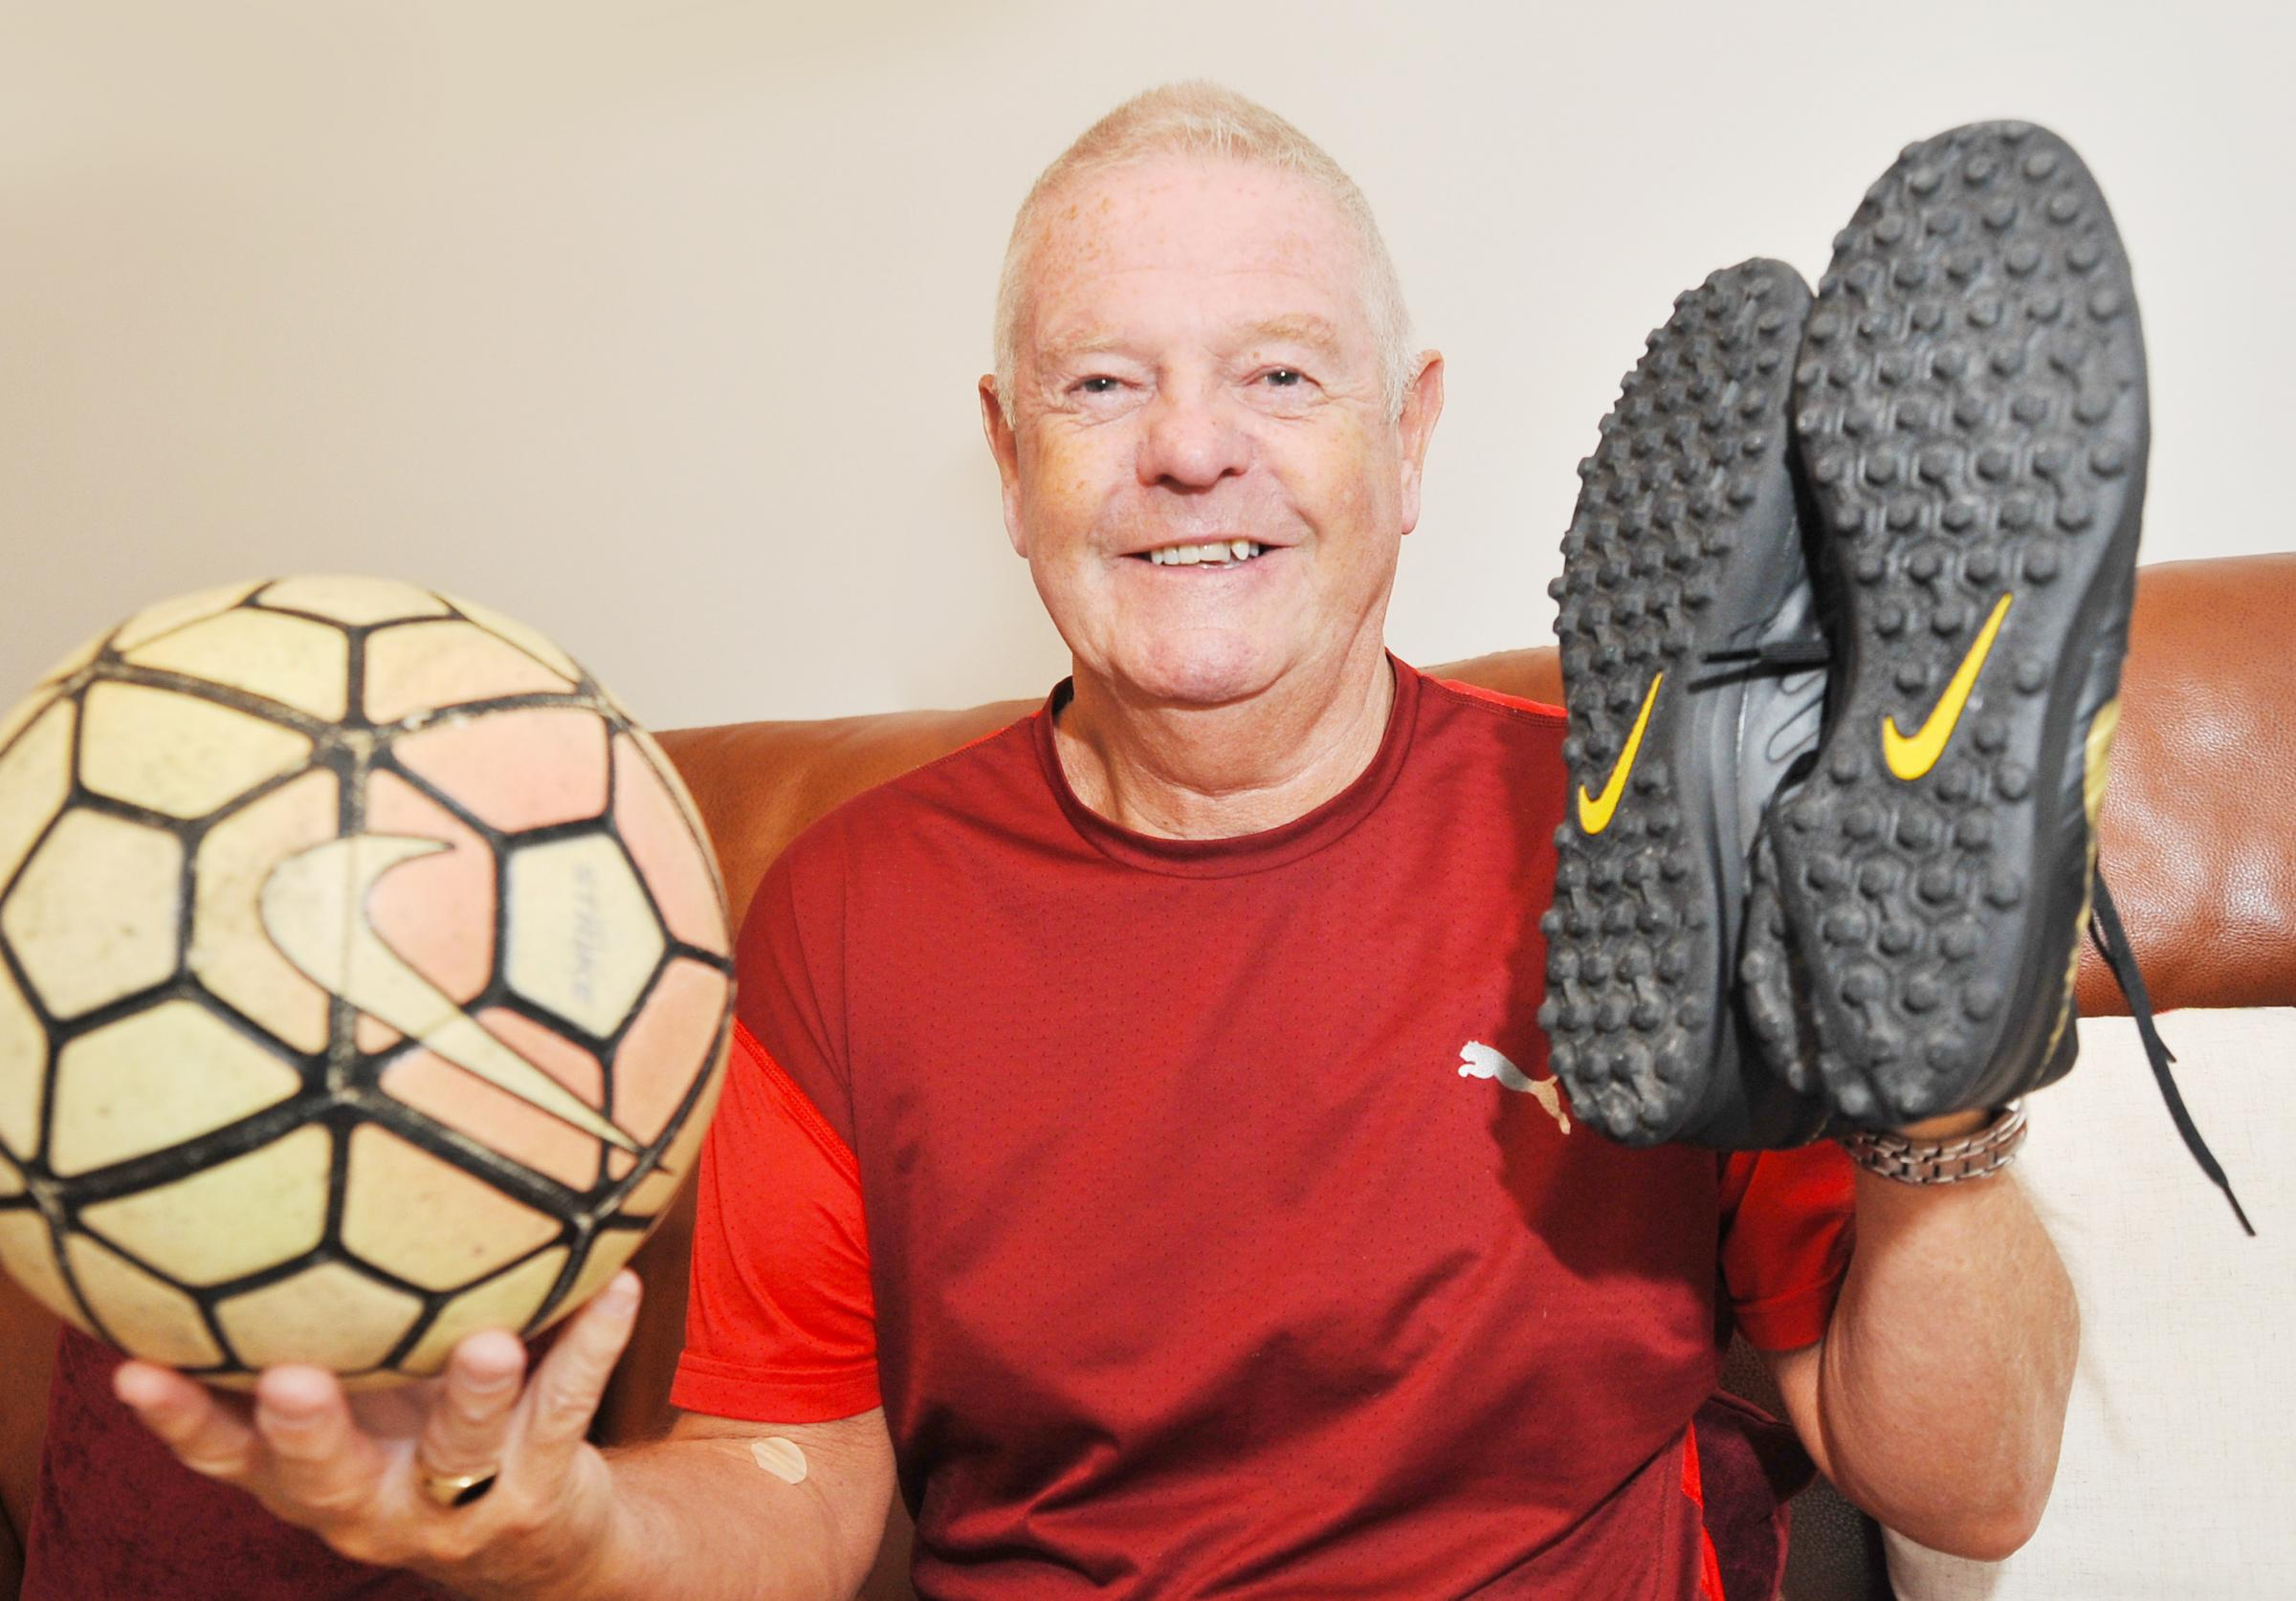 Football fan's still kicking about as he prepares to turn 70